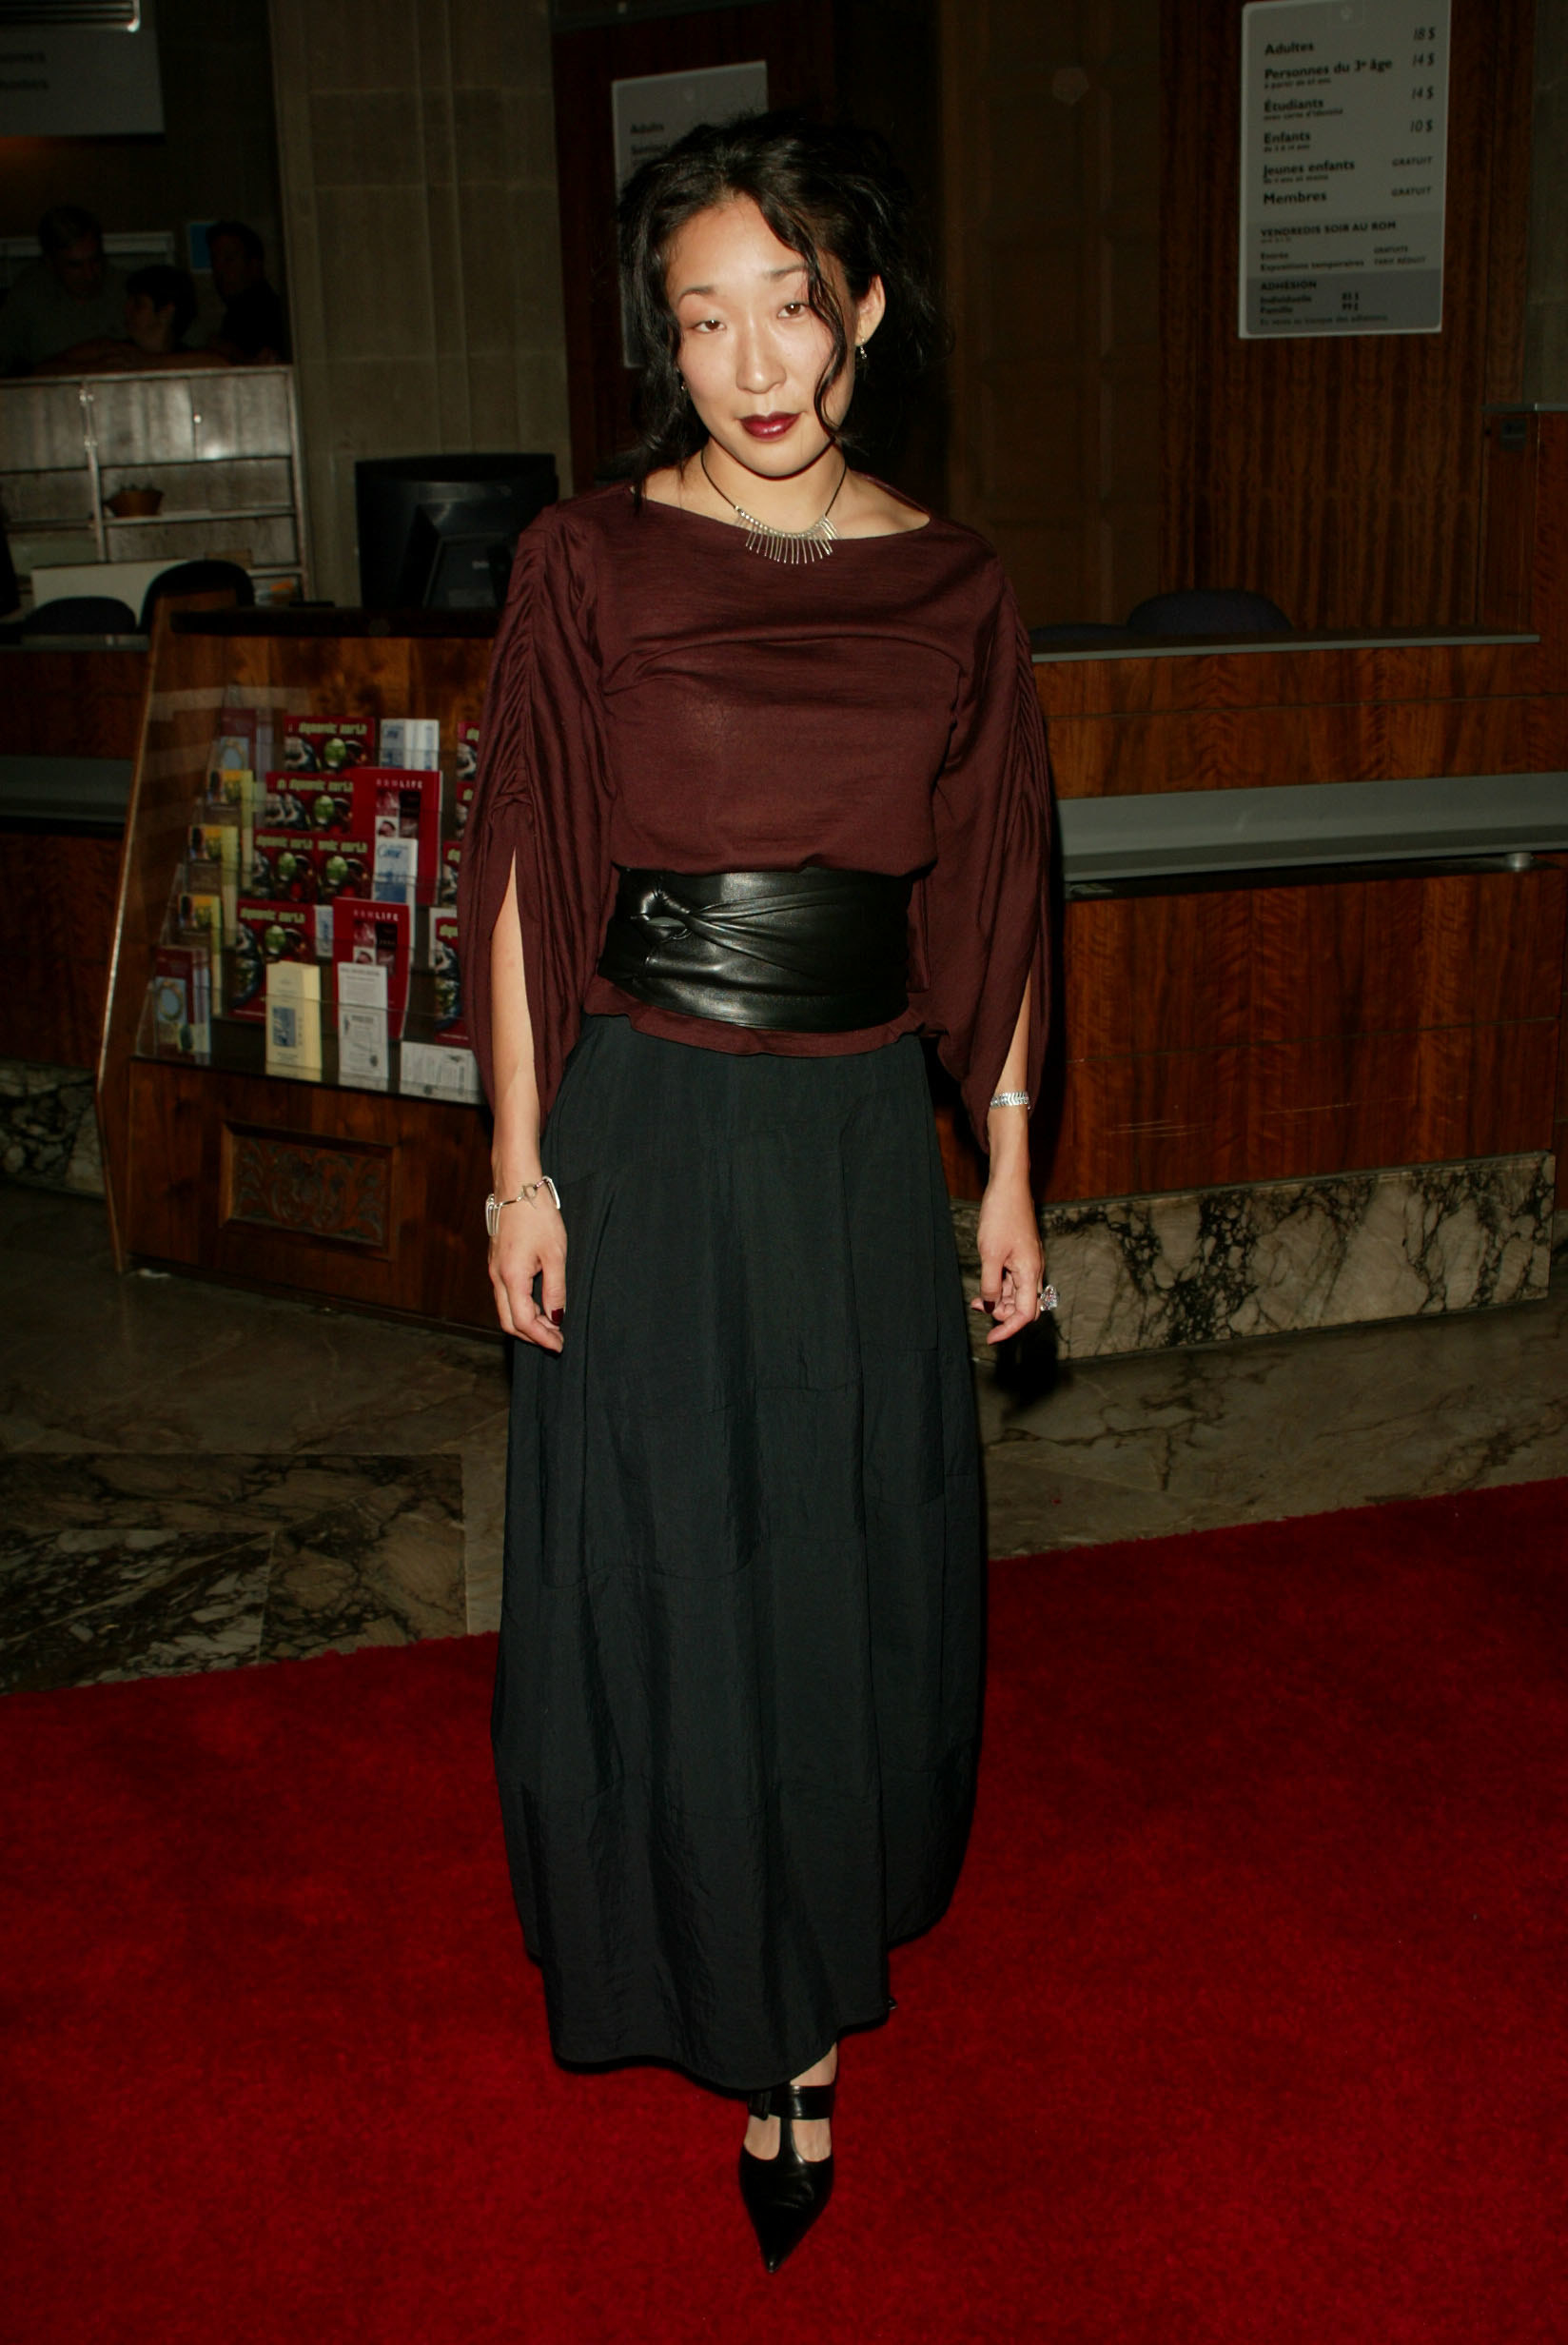 Sandra Oh on a red carpet with a long skirt and black leather belt